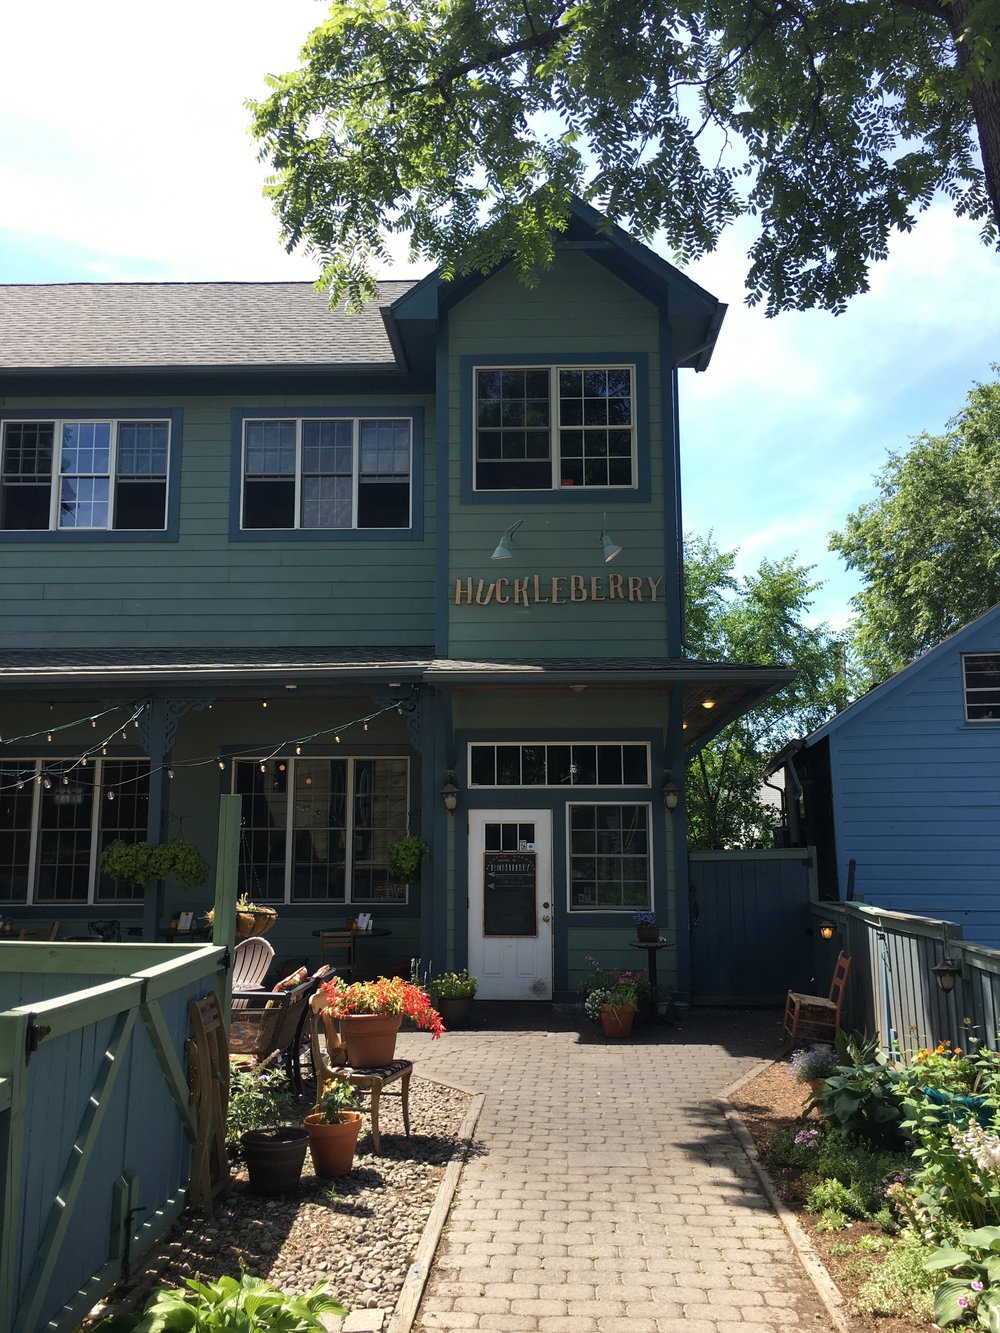 Huckleberry in New Paltz - What to See, Do, and Eat in Hudson, NY - wear she blossoms